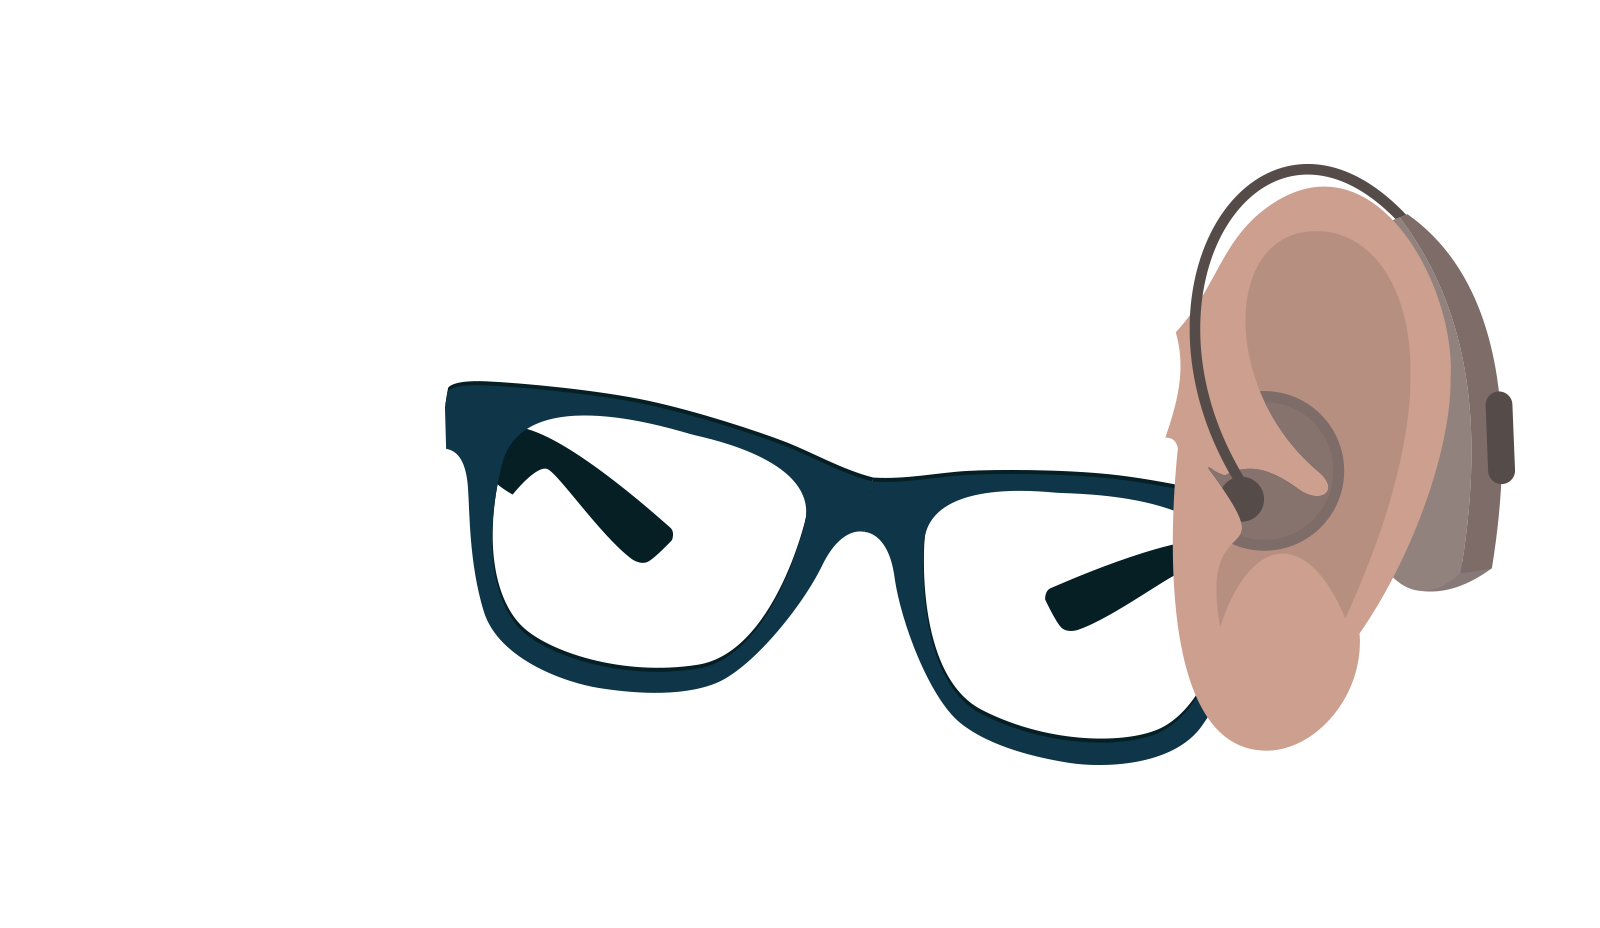 A pair of black glasses and an ear with a hearing aid.